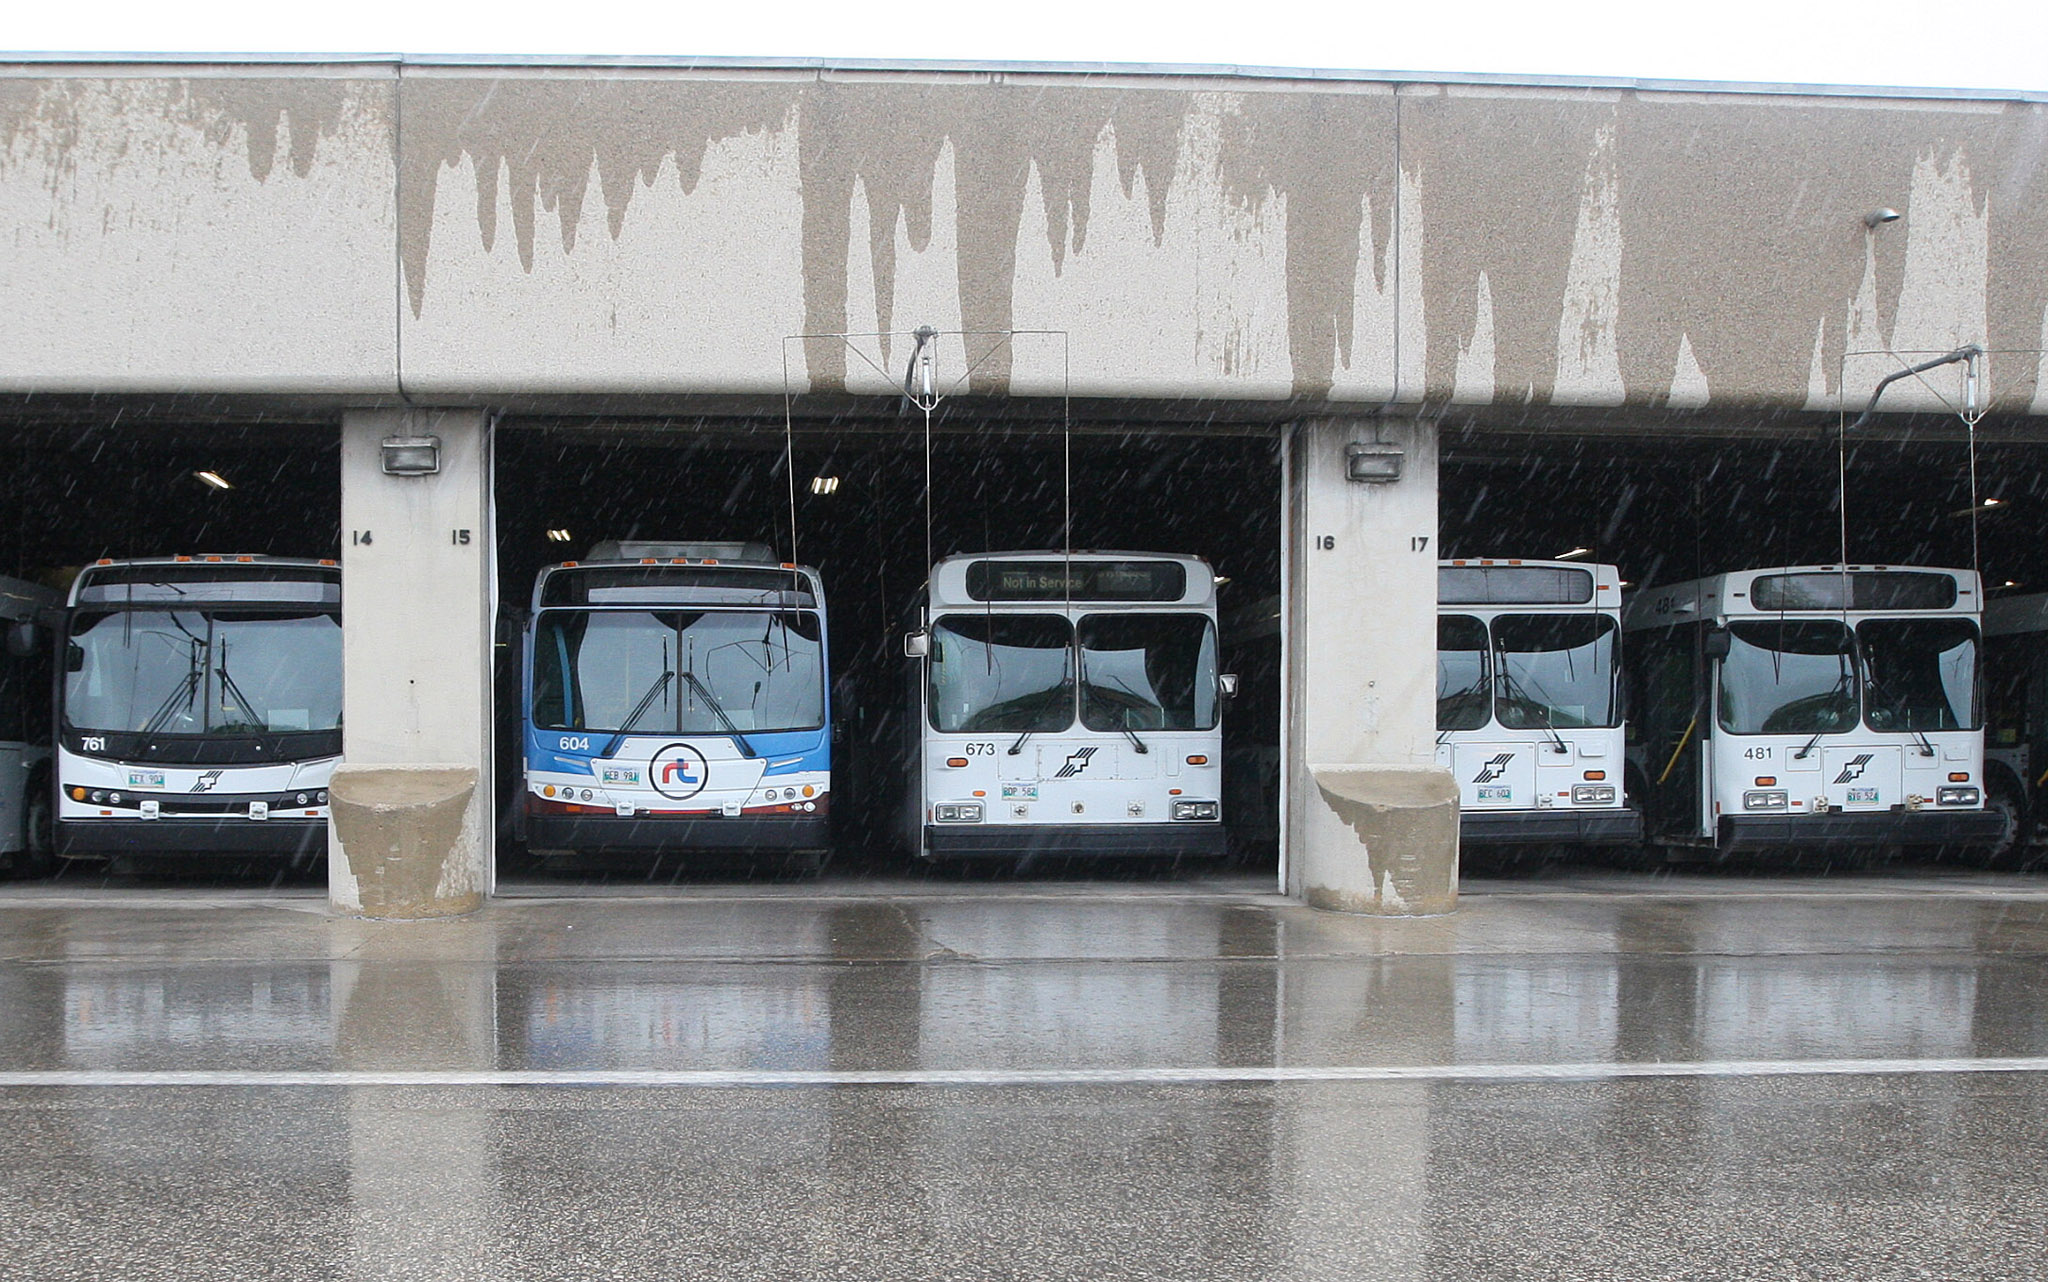 Winnipeg Transit buses ready to be deployed from the Osborne transit garage in a file photo.